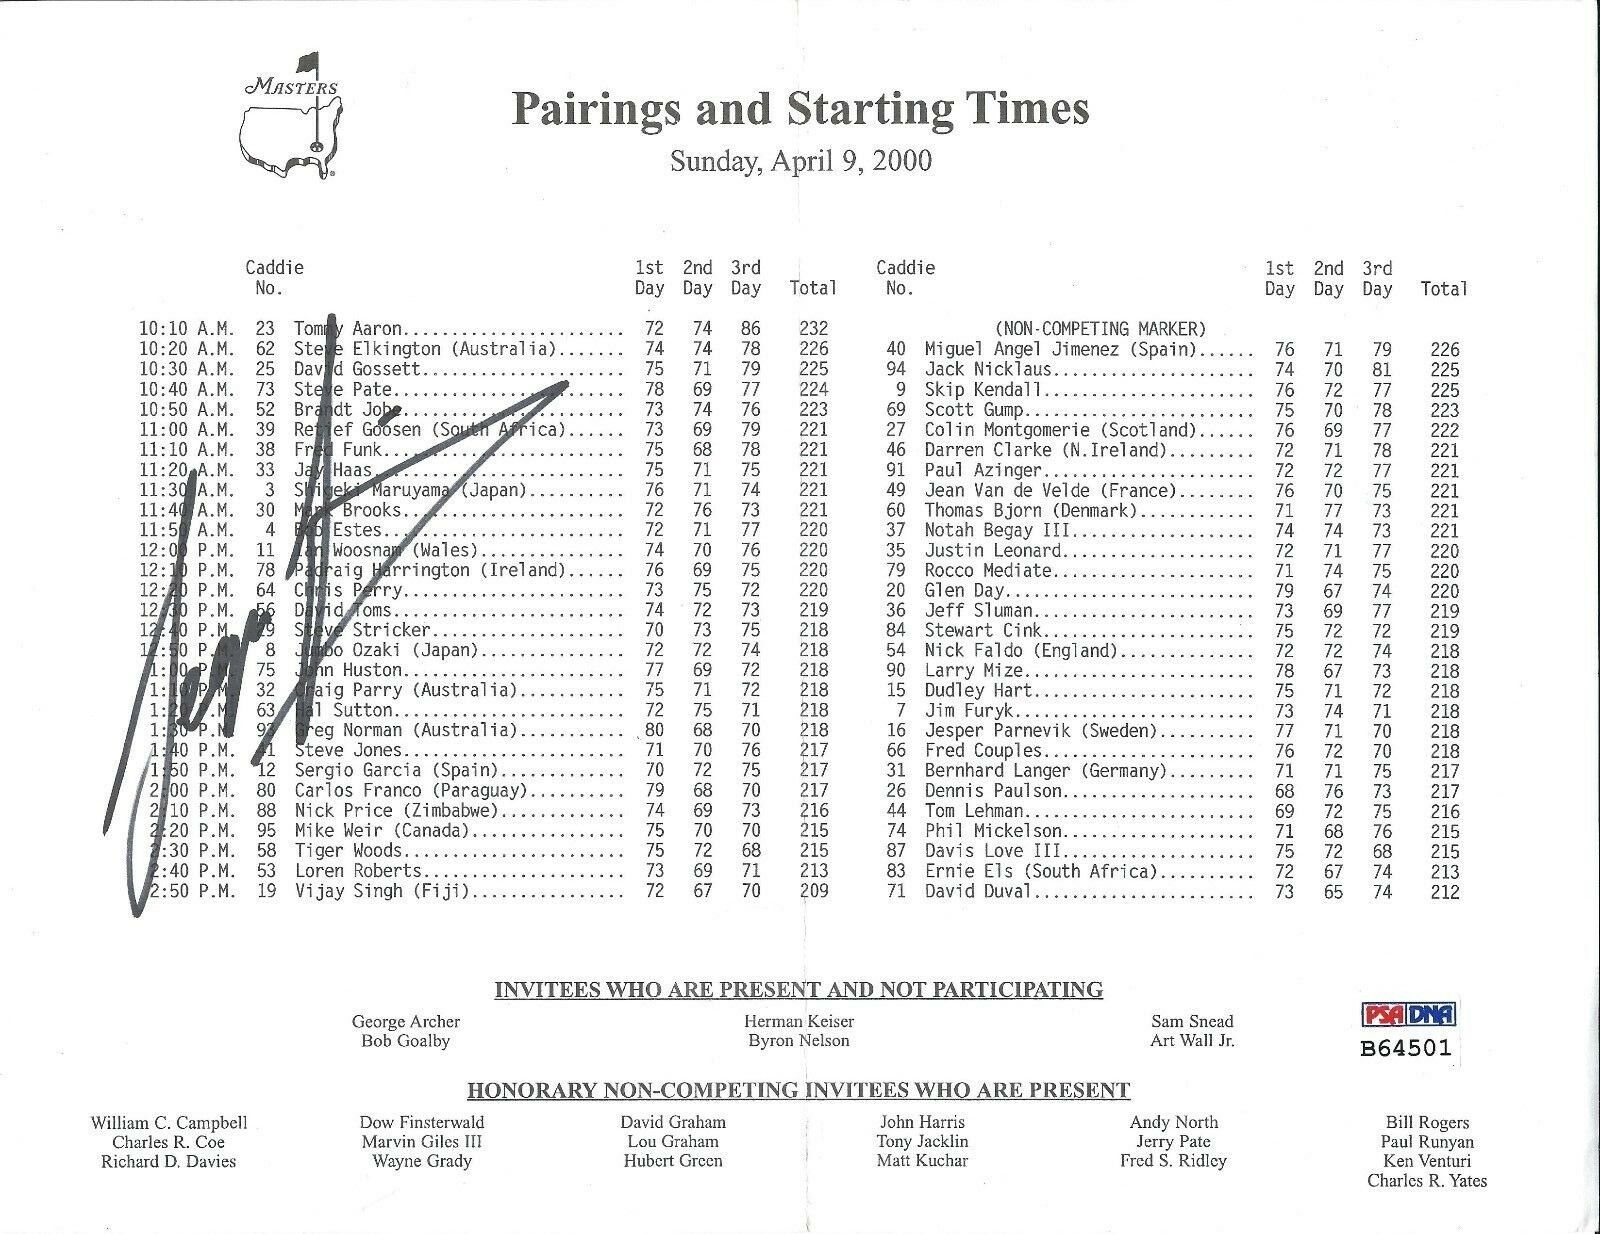 Sergio Garcia Signed Pairings and Starting Times Golf Tournament Sheet PSA